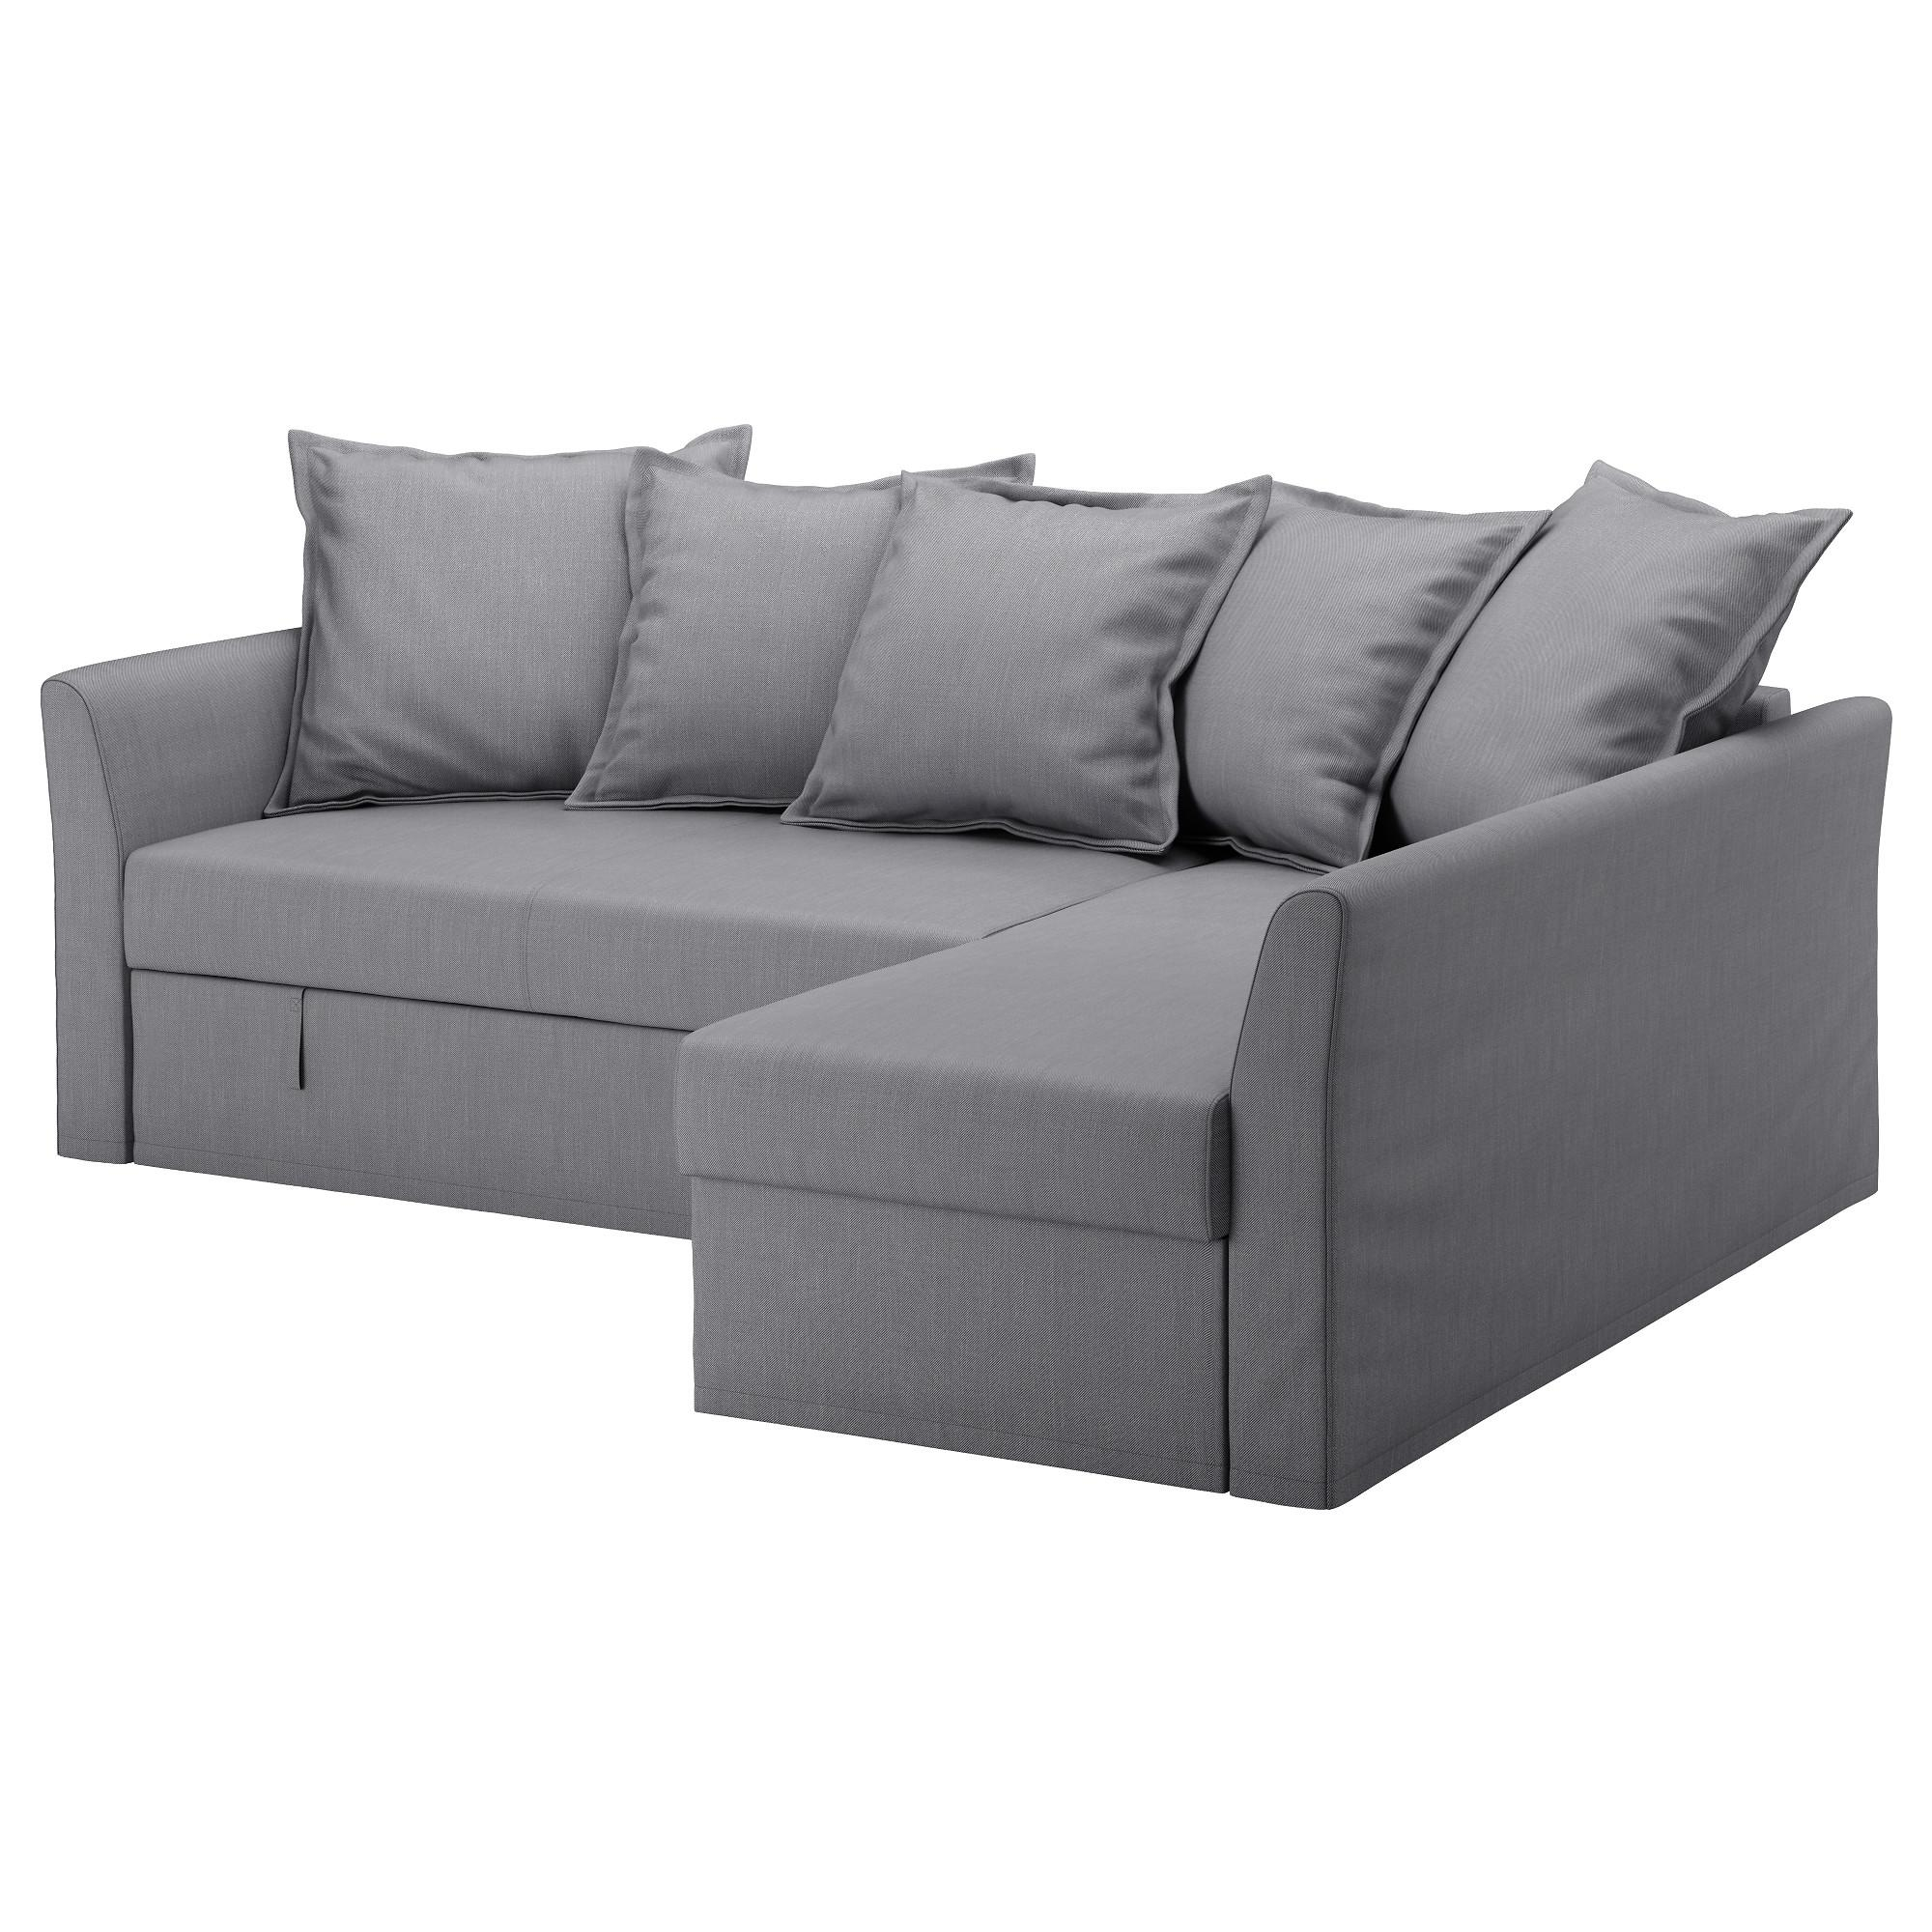 Sofa Beds & Futons | Ikea With Ikea Single Sofa Beds (View 11 of 23)